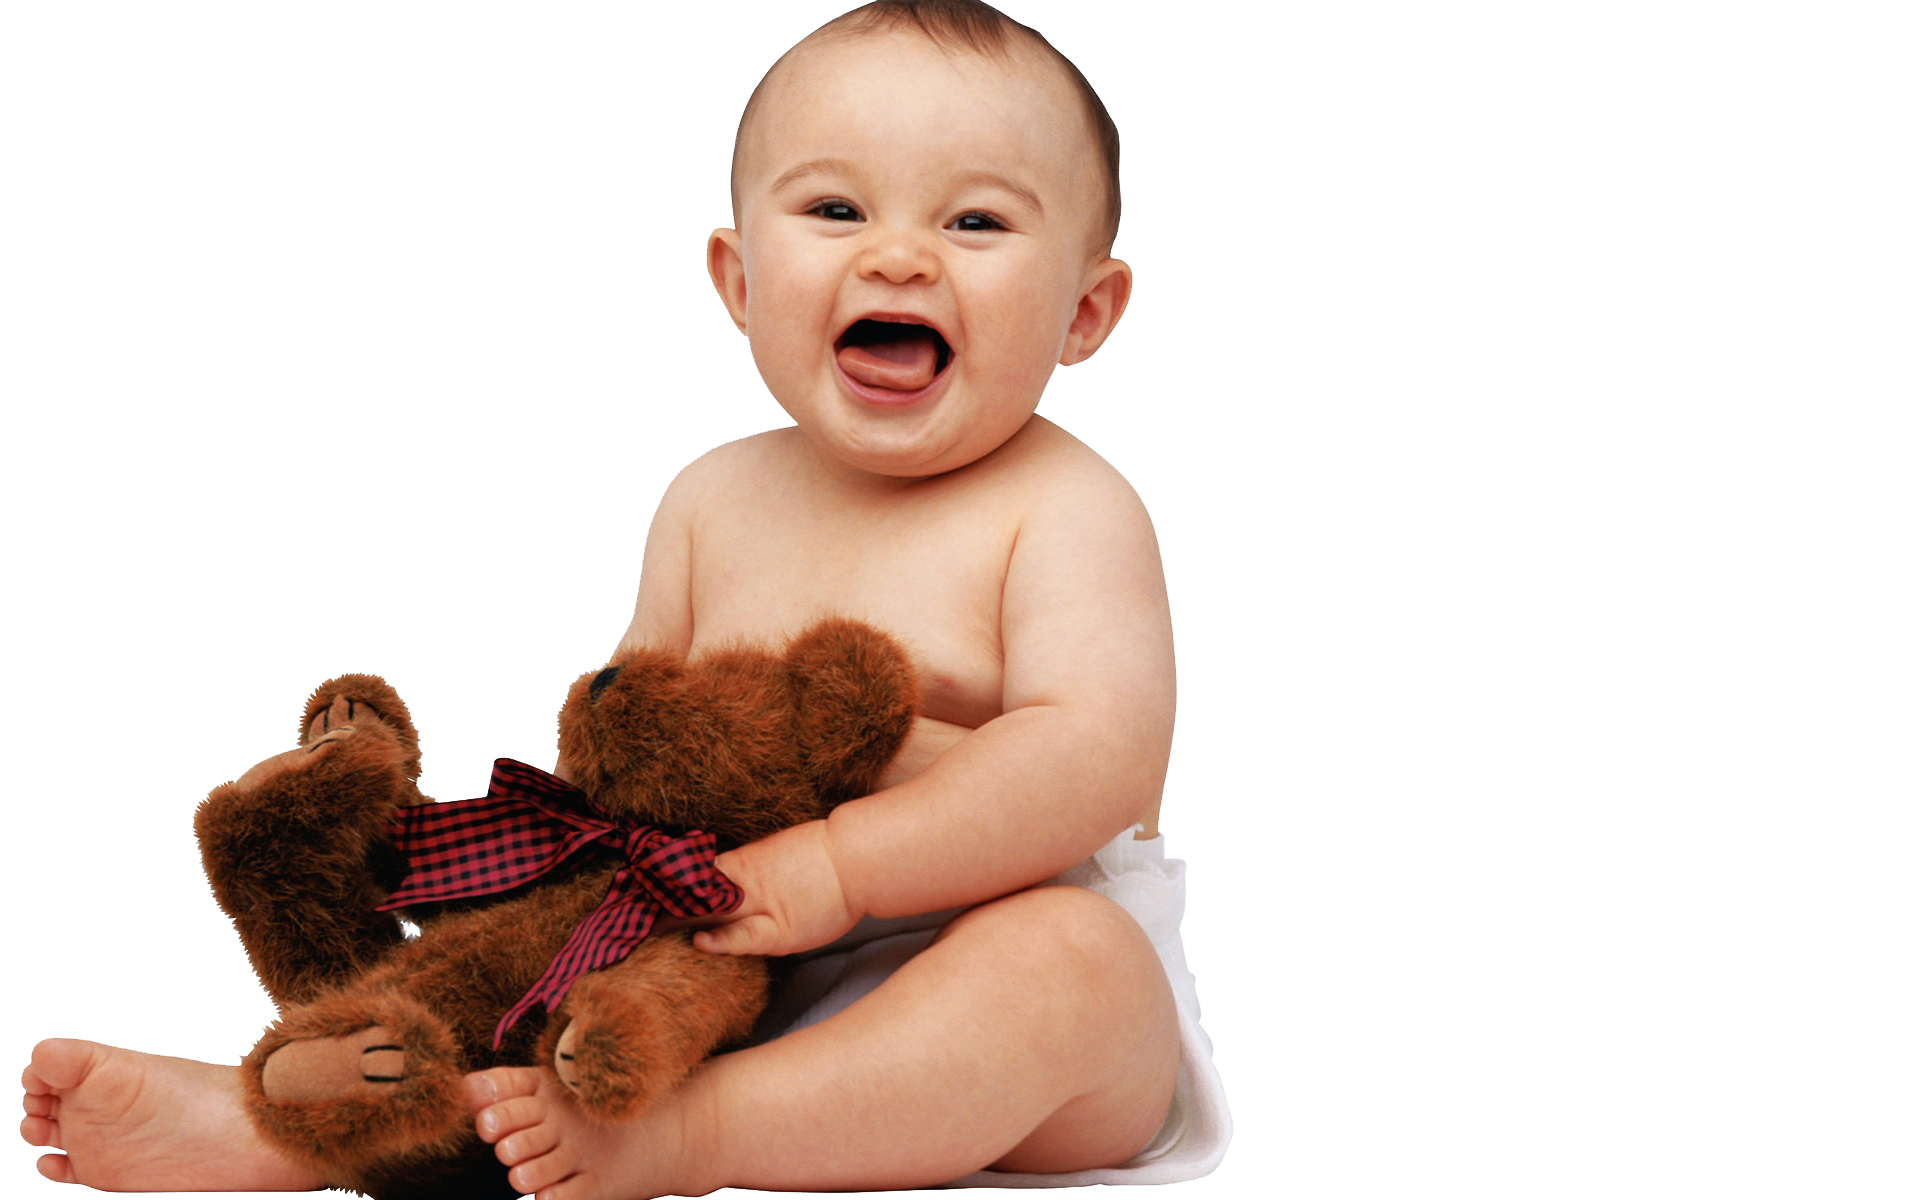 baby-png-hd